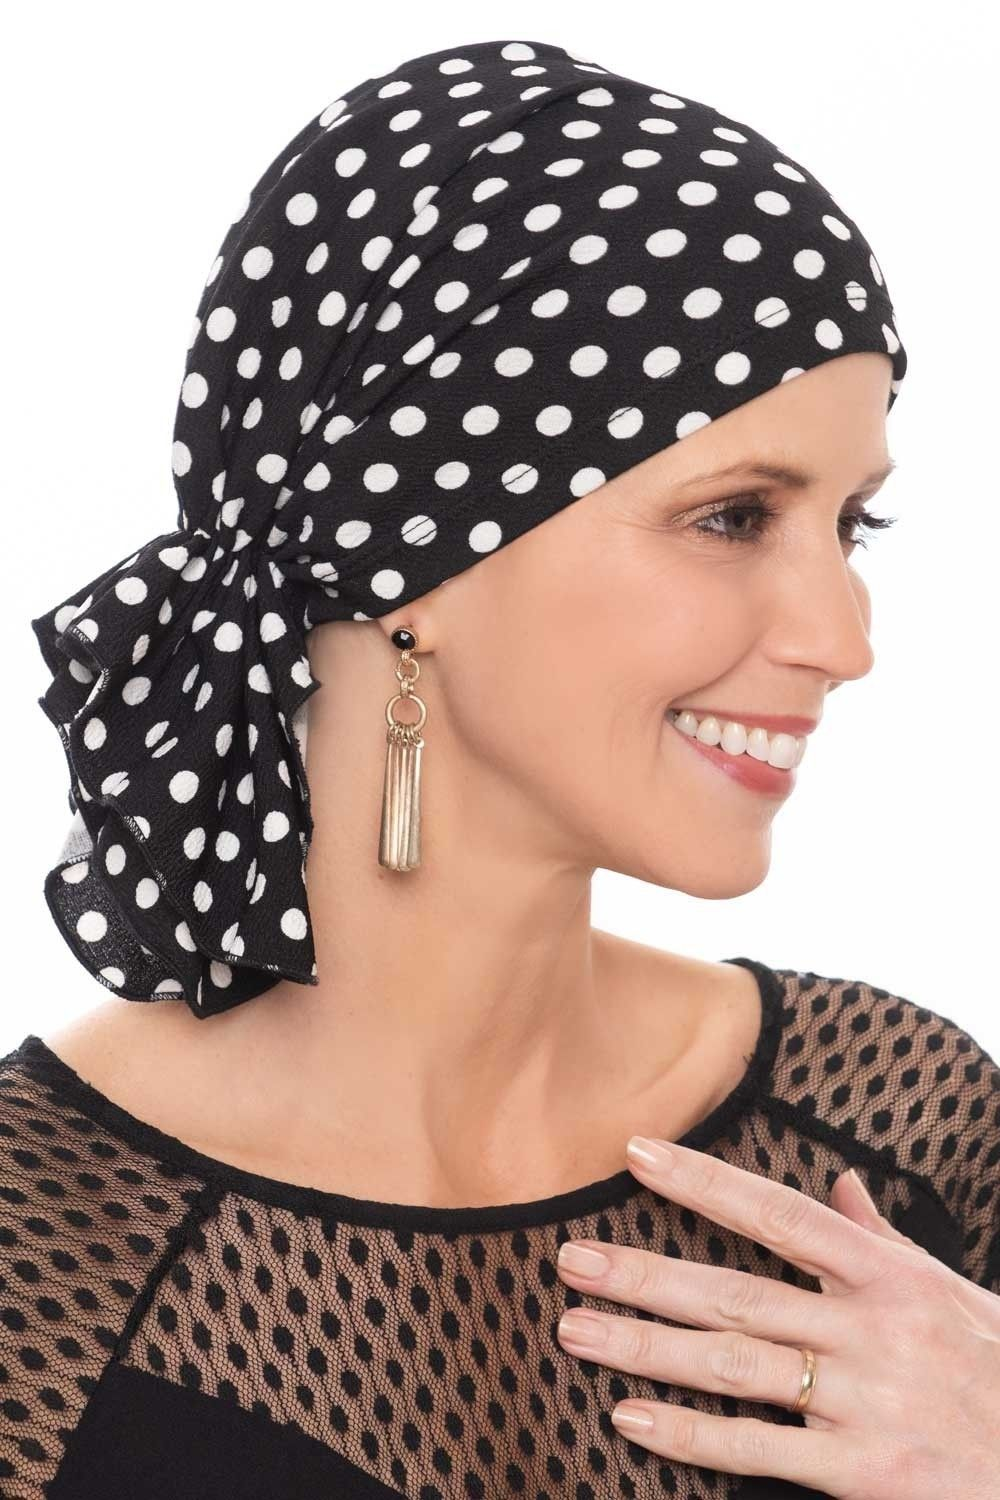 Slip On Slinky Headwrap Pre-Tied Head Scarf #tieheadscarves Slinky Scarves For Cancer Patients | Headcovers #tieheadscarves Slip On Slinky Headwrap Pre-Tied Head Scarf #tieheadscarves Slinky Scarves For Cancer Patients | Headcovers #tieheadscarves